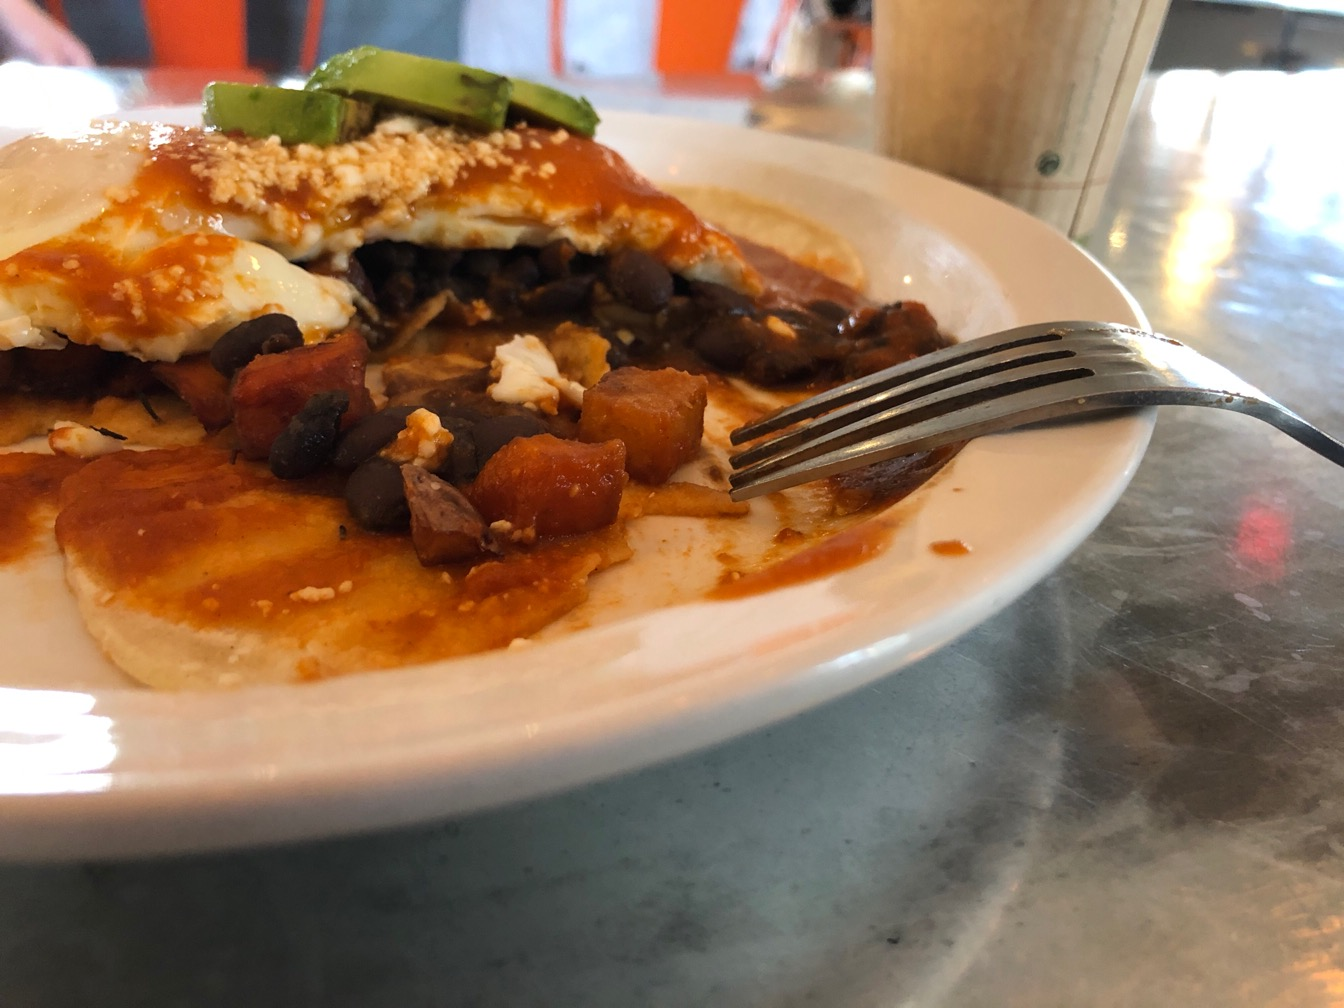 Half eaten plate of huevos rancheros with a cup of coffee.